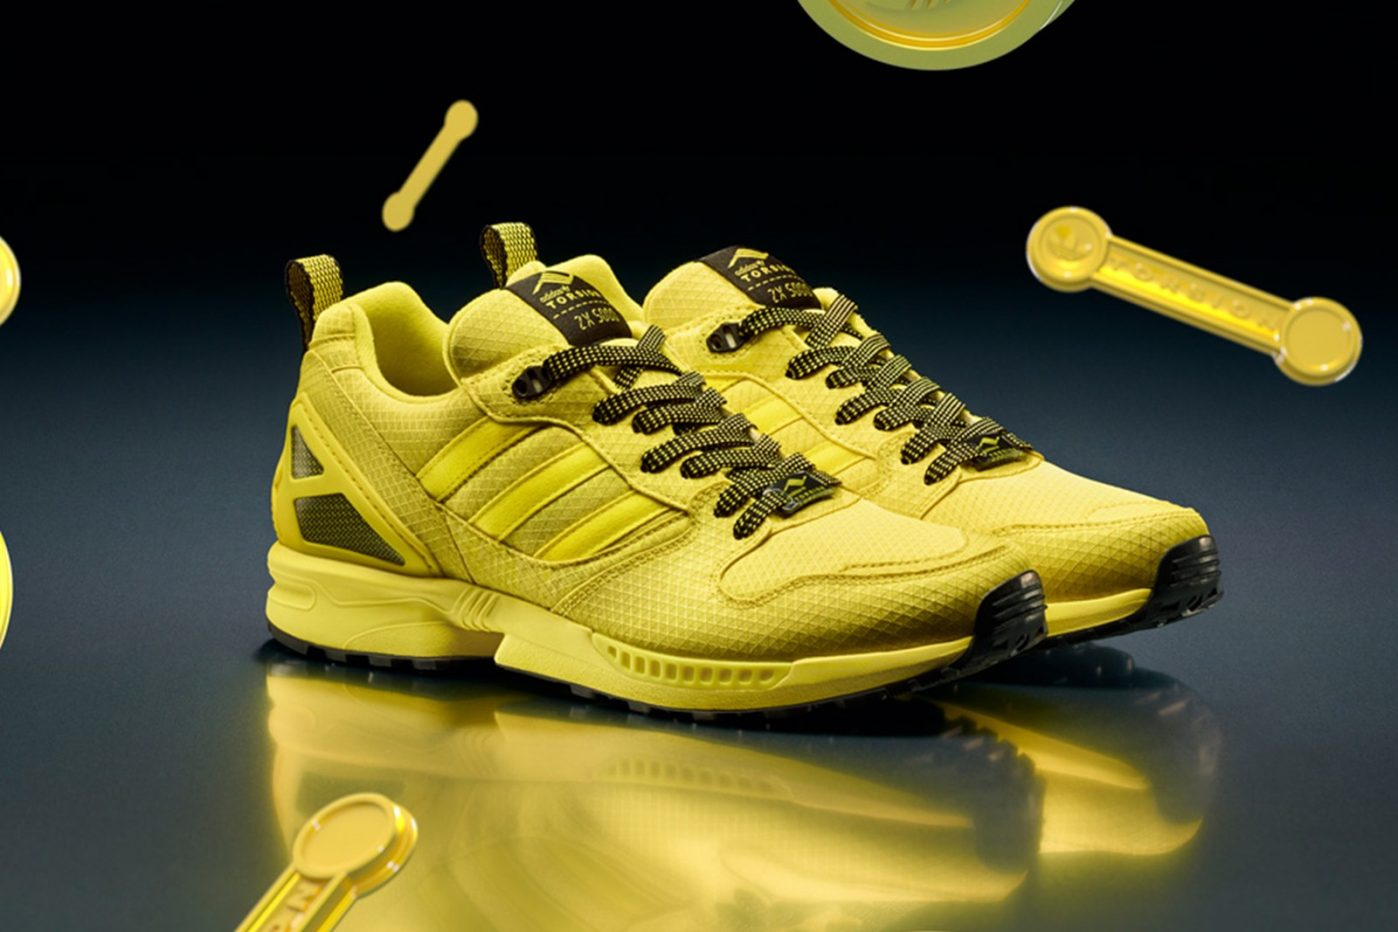 New adidas originals shoes are made of yellow kevlar ZX 5000 Torsion sneakers